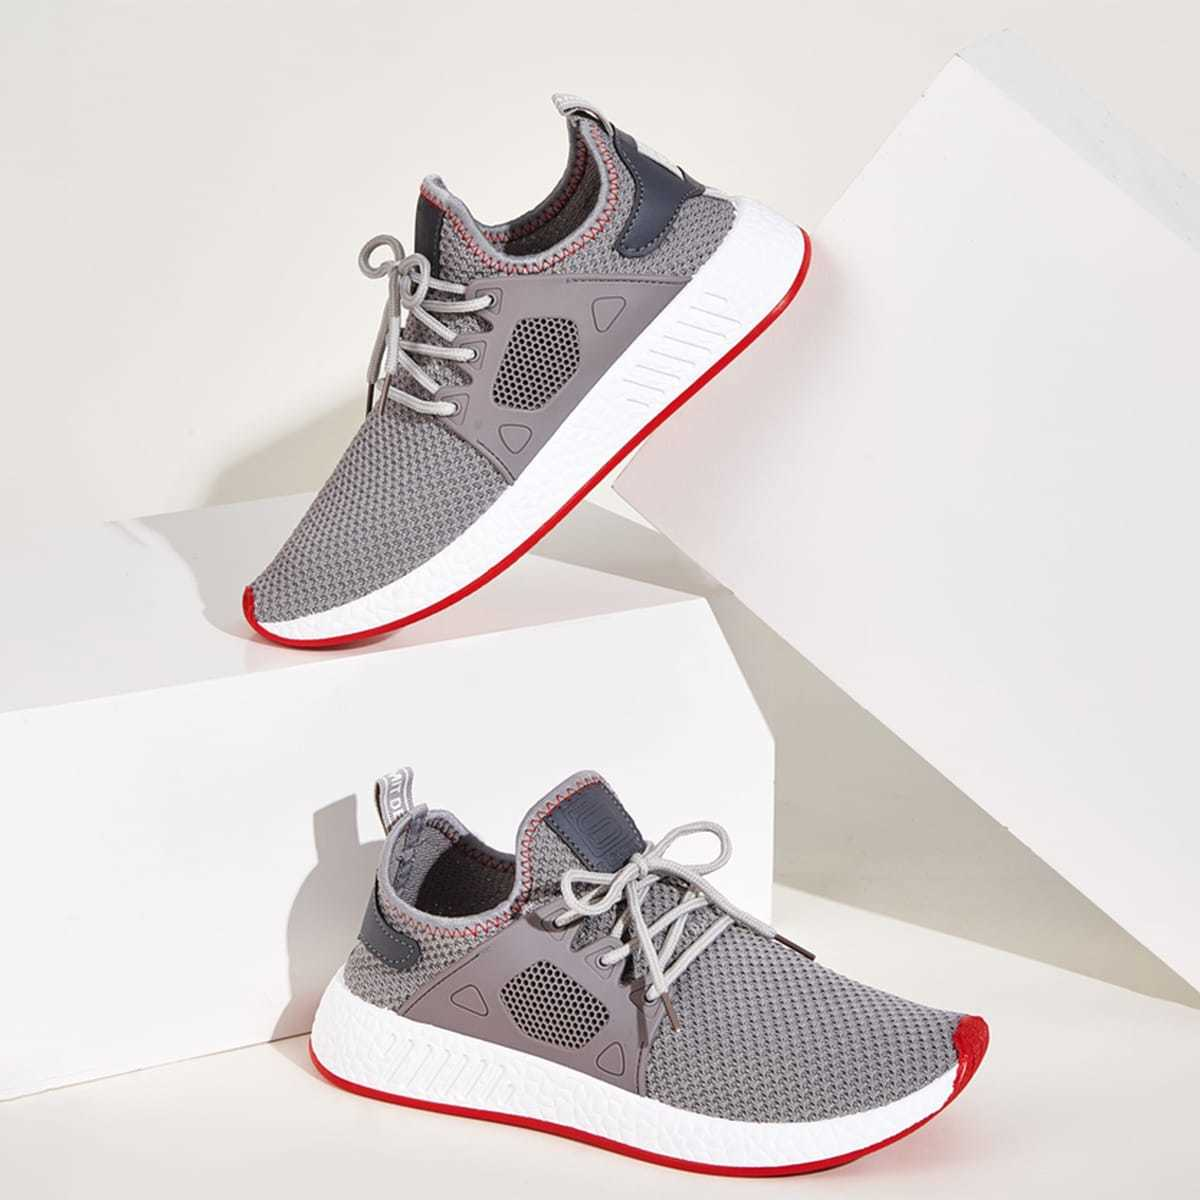 Guys Lace-up Front Mesh Trainers in Grey by ROMWE on GOOFASH